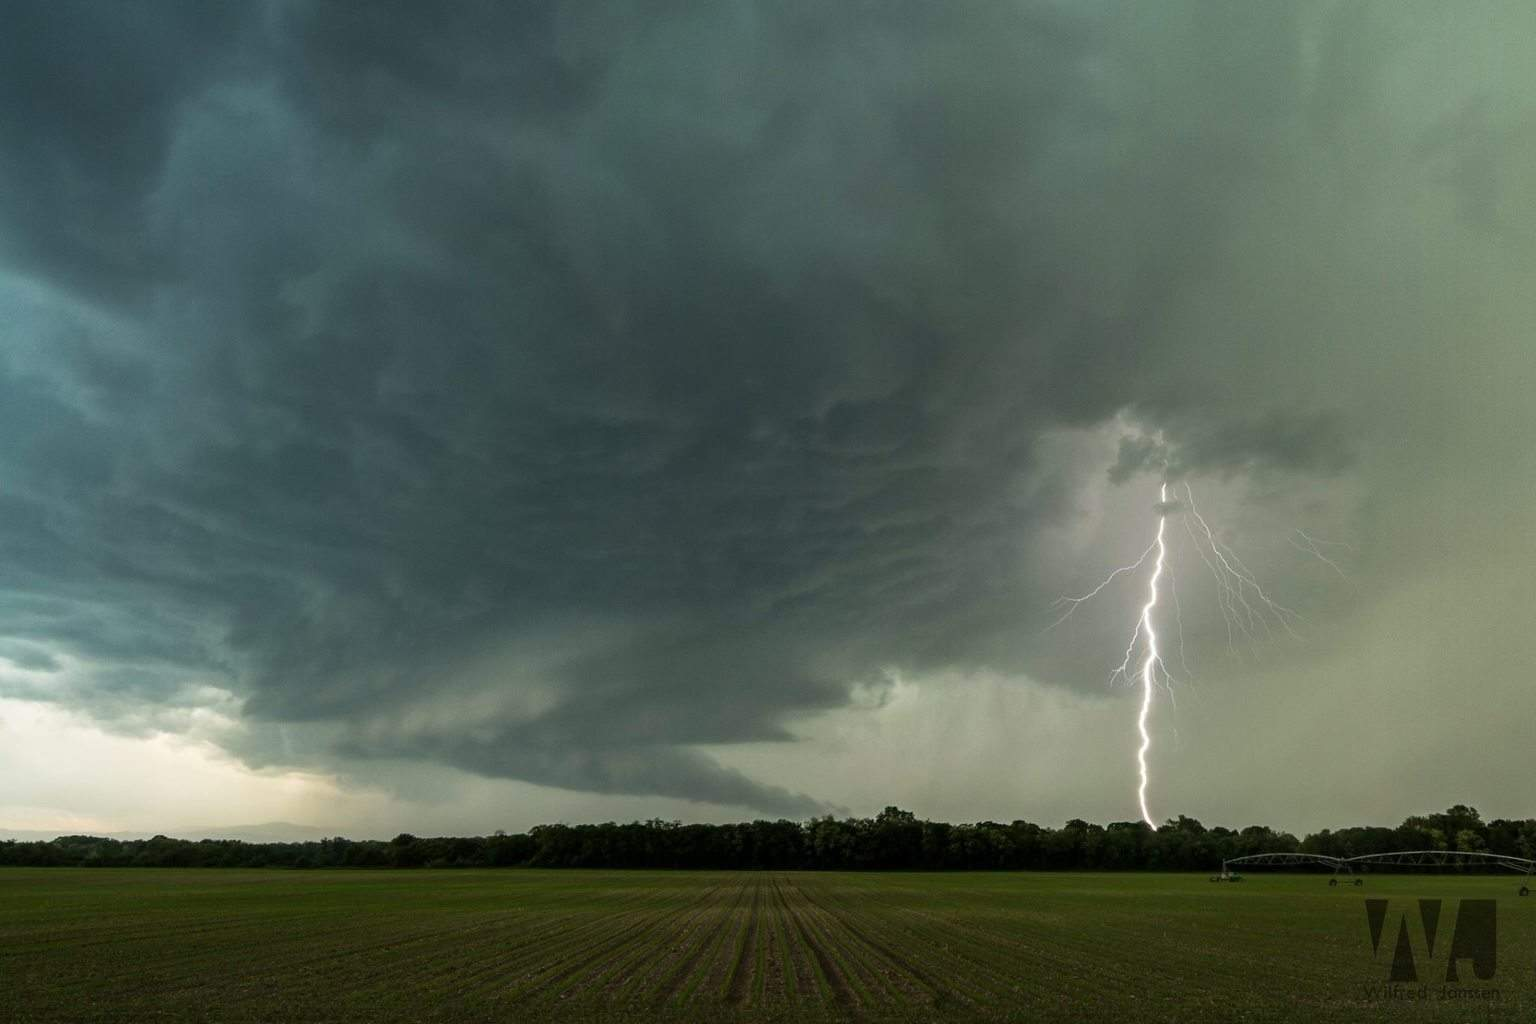 """Classic supercell thunderstorm near Freiburg (Germany) along the France/German border on May 13th 2015. This supercell managed to produce an EF-2 tornado about 15 miles east of us. We had to give up following this cell when we were trapped in its hail core with 1.5"""" hail. One of the best supercells I've ever captured while chasing in Western Europe!"""